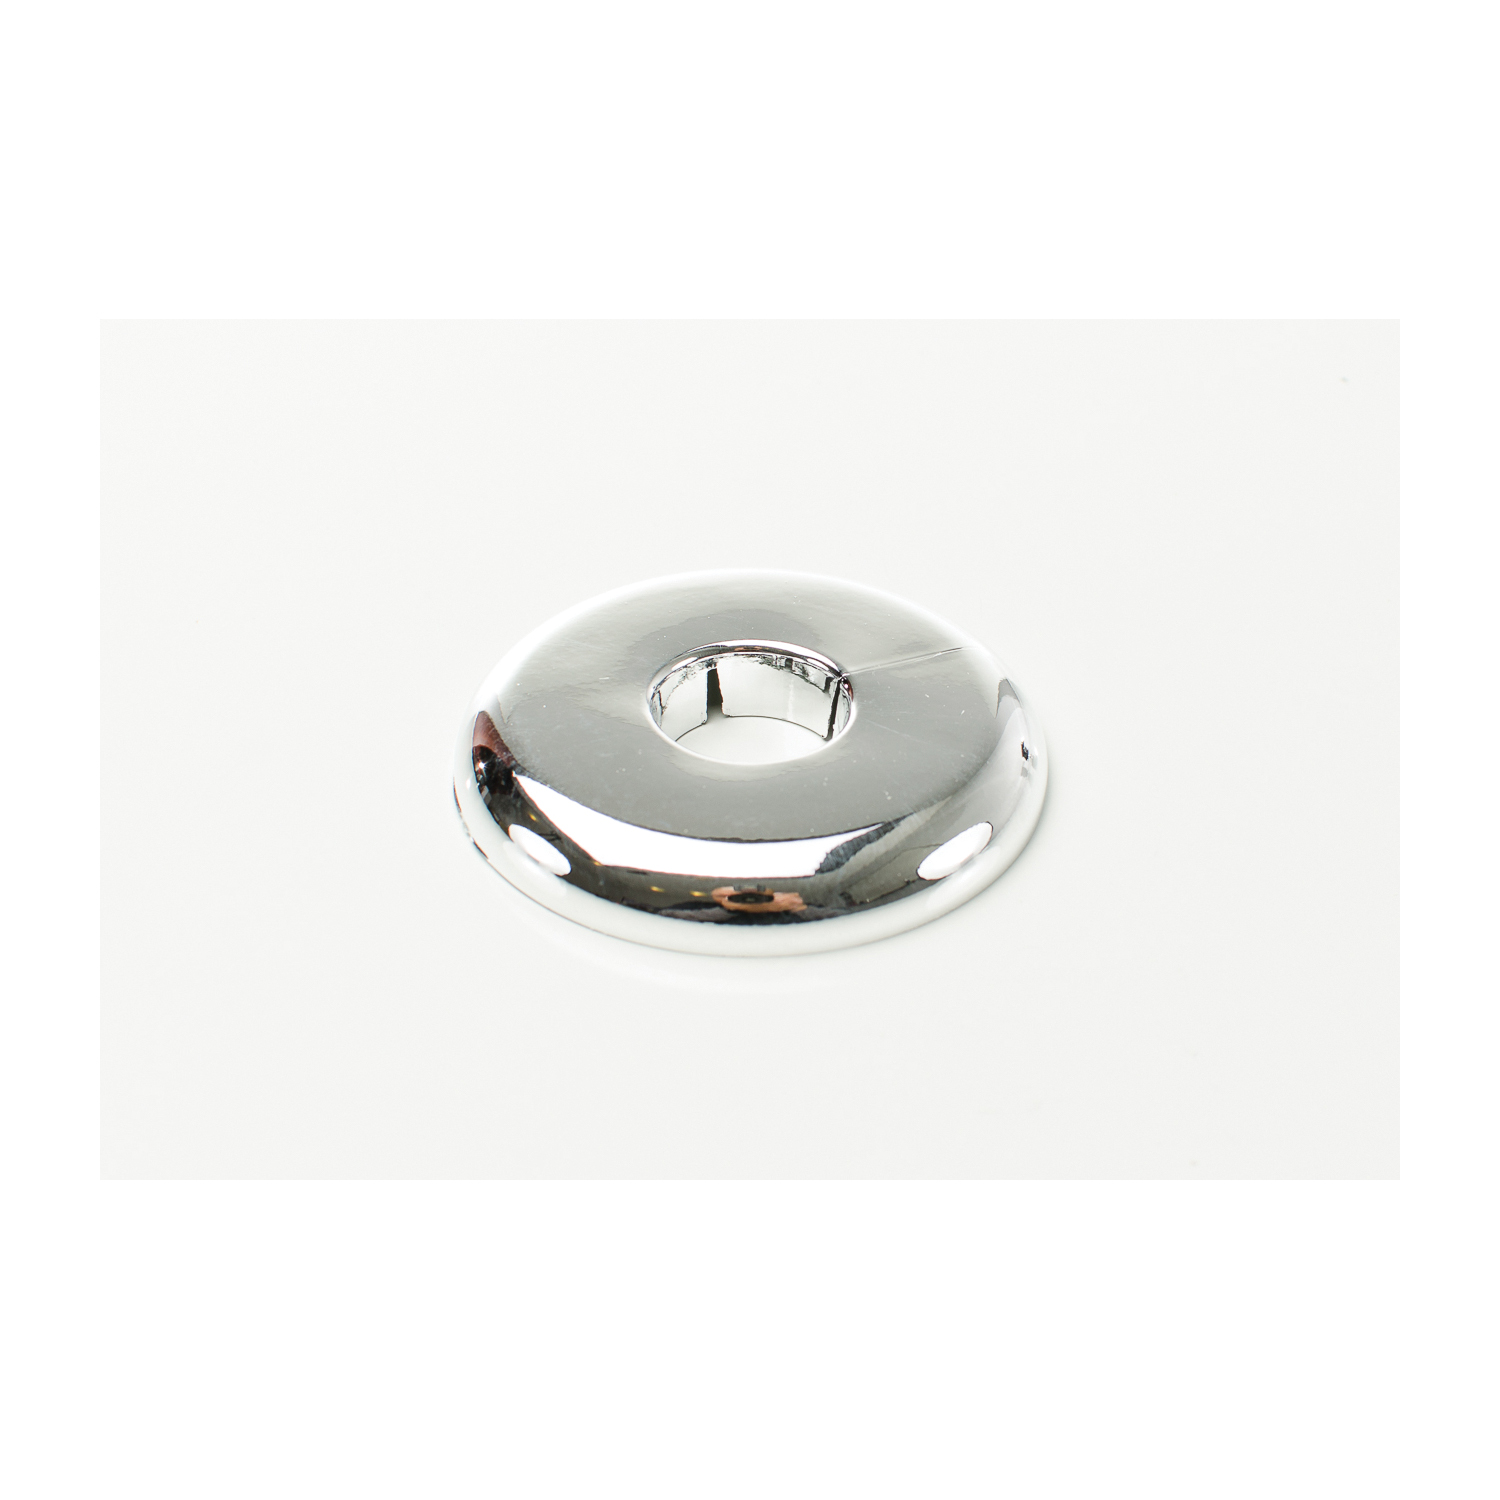 PASCO 2874 Split-One Floor and Ceiling Plate, 3/4 in CWT Thread, Plastic, Polished Chrome